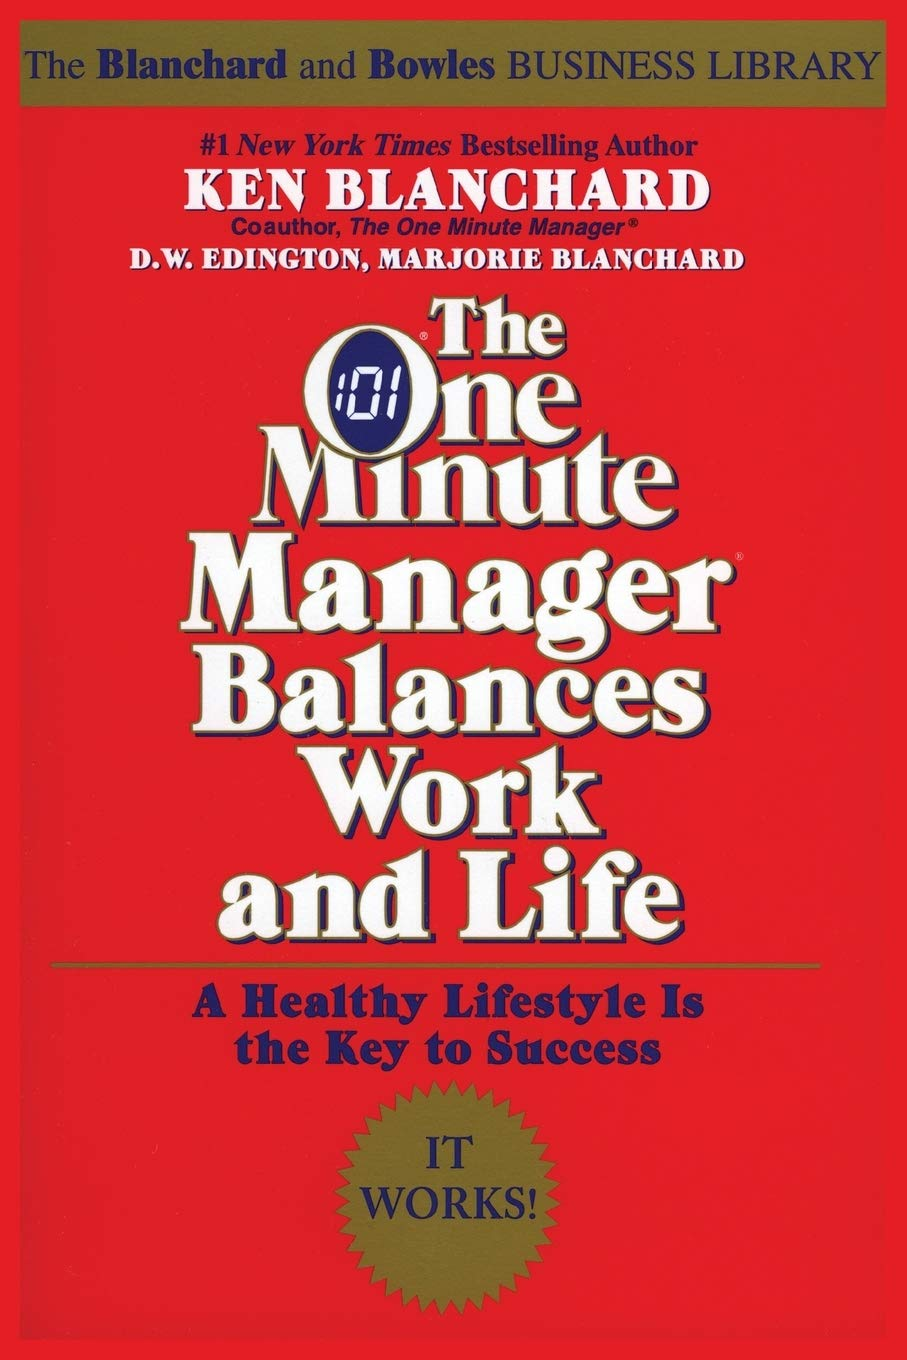 Image OfThe One Minute Manager Balances Work And Life (One Minute Manager Library)